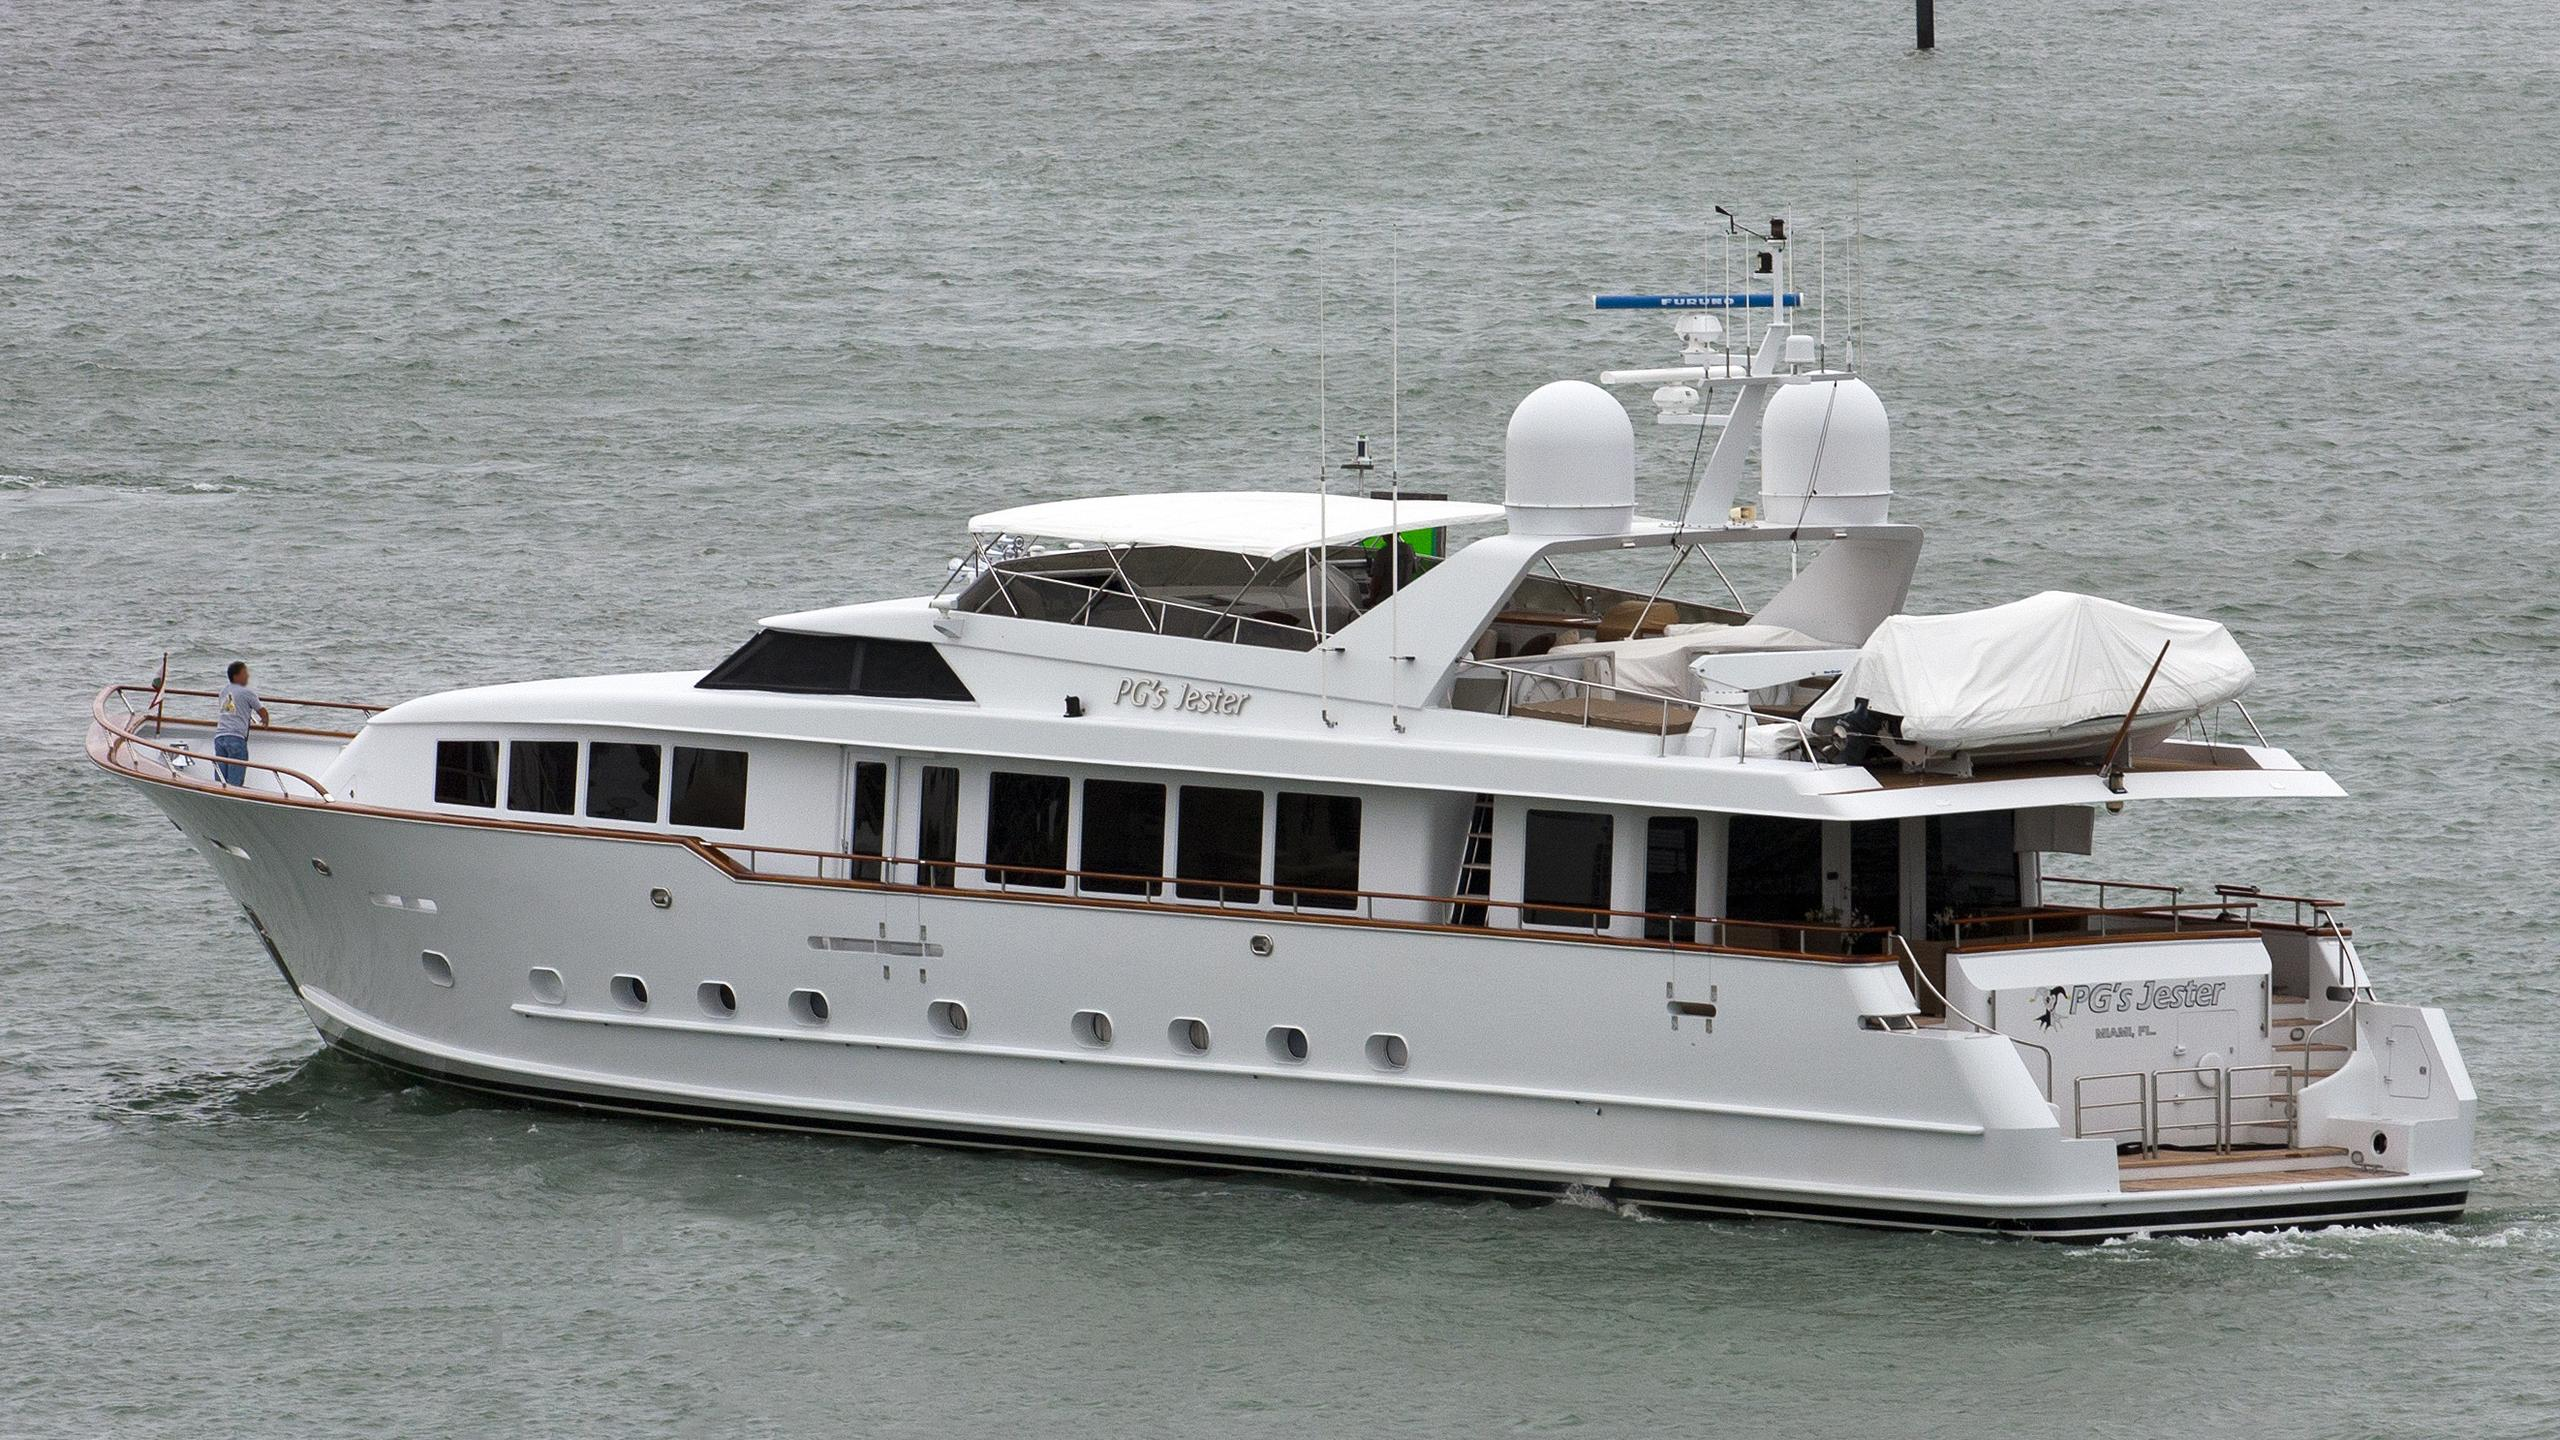 pgs-jester-yacht-exterior